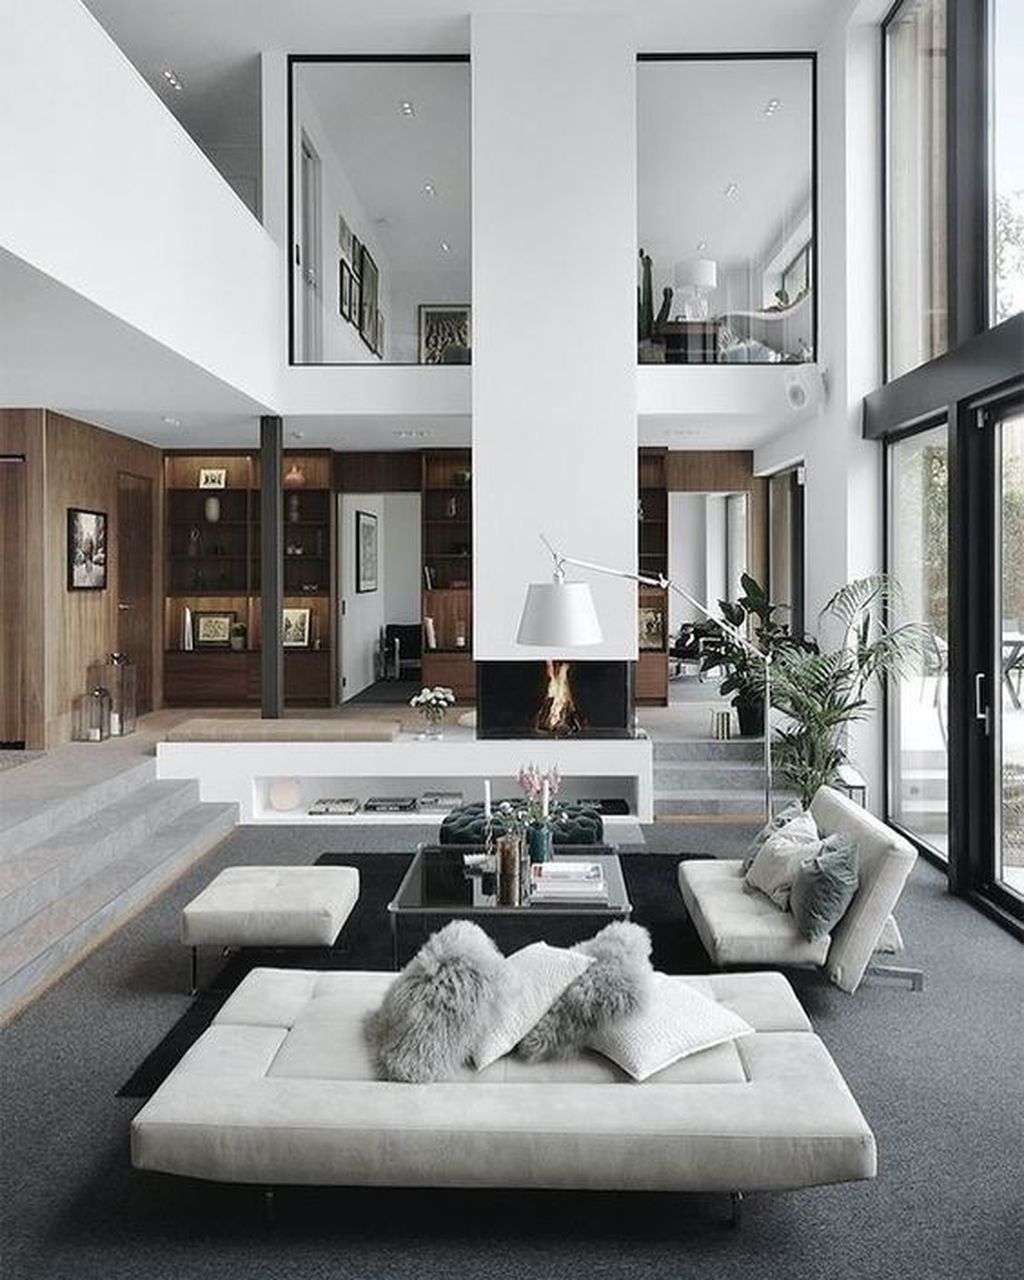 50 Stunning Modern House Design Interior Ideas Interior Design